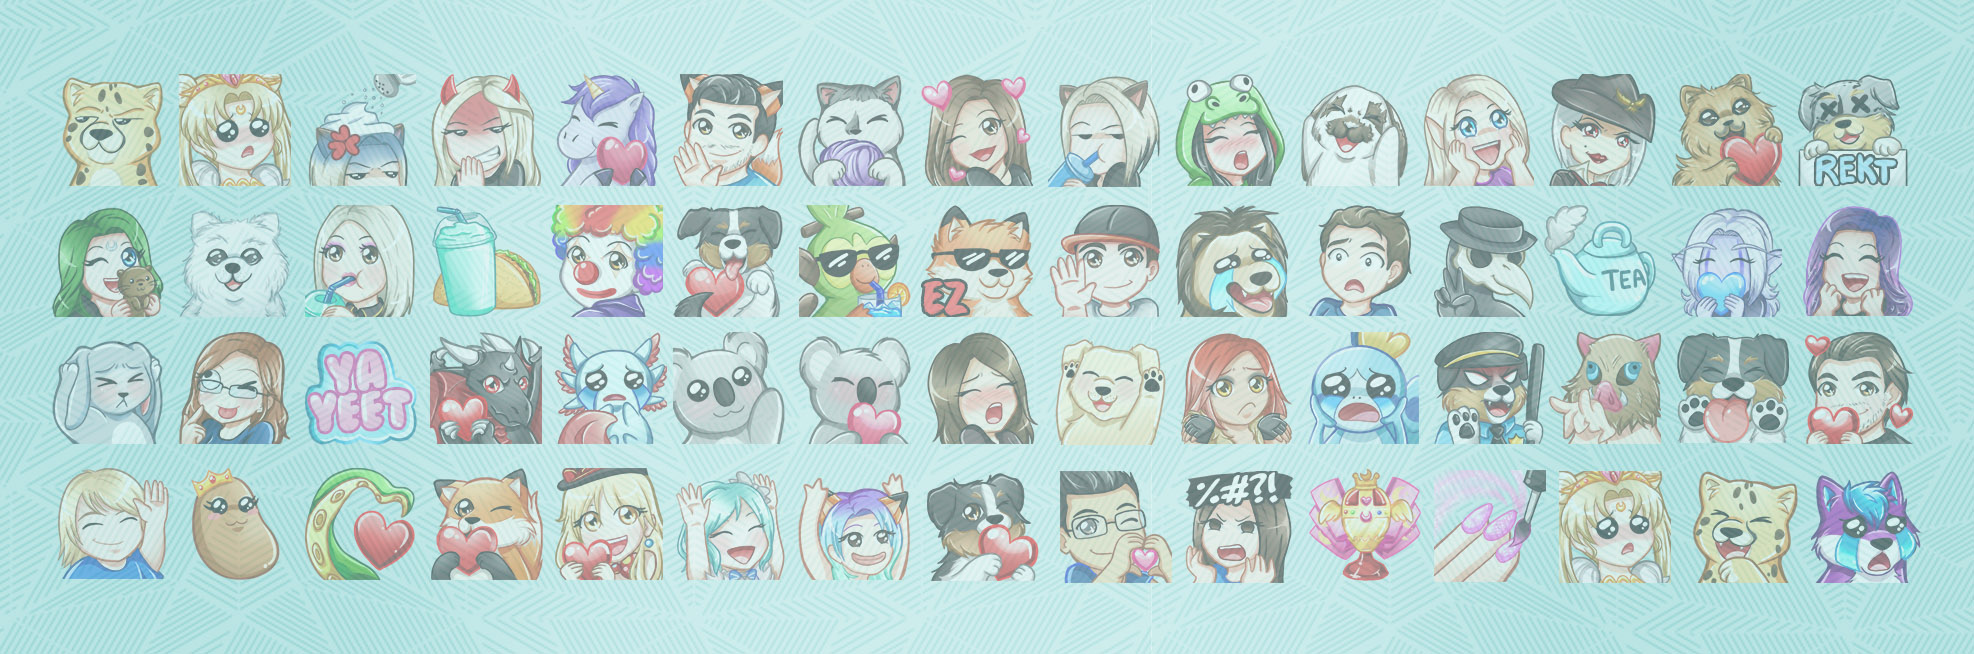 Custom Twitch Emotes | Best Twitch Emote Artists | RissaRamblesArt.com